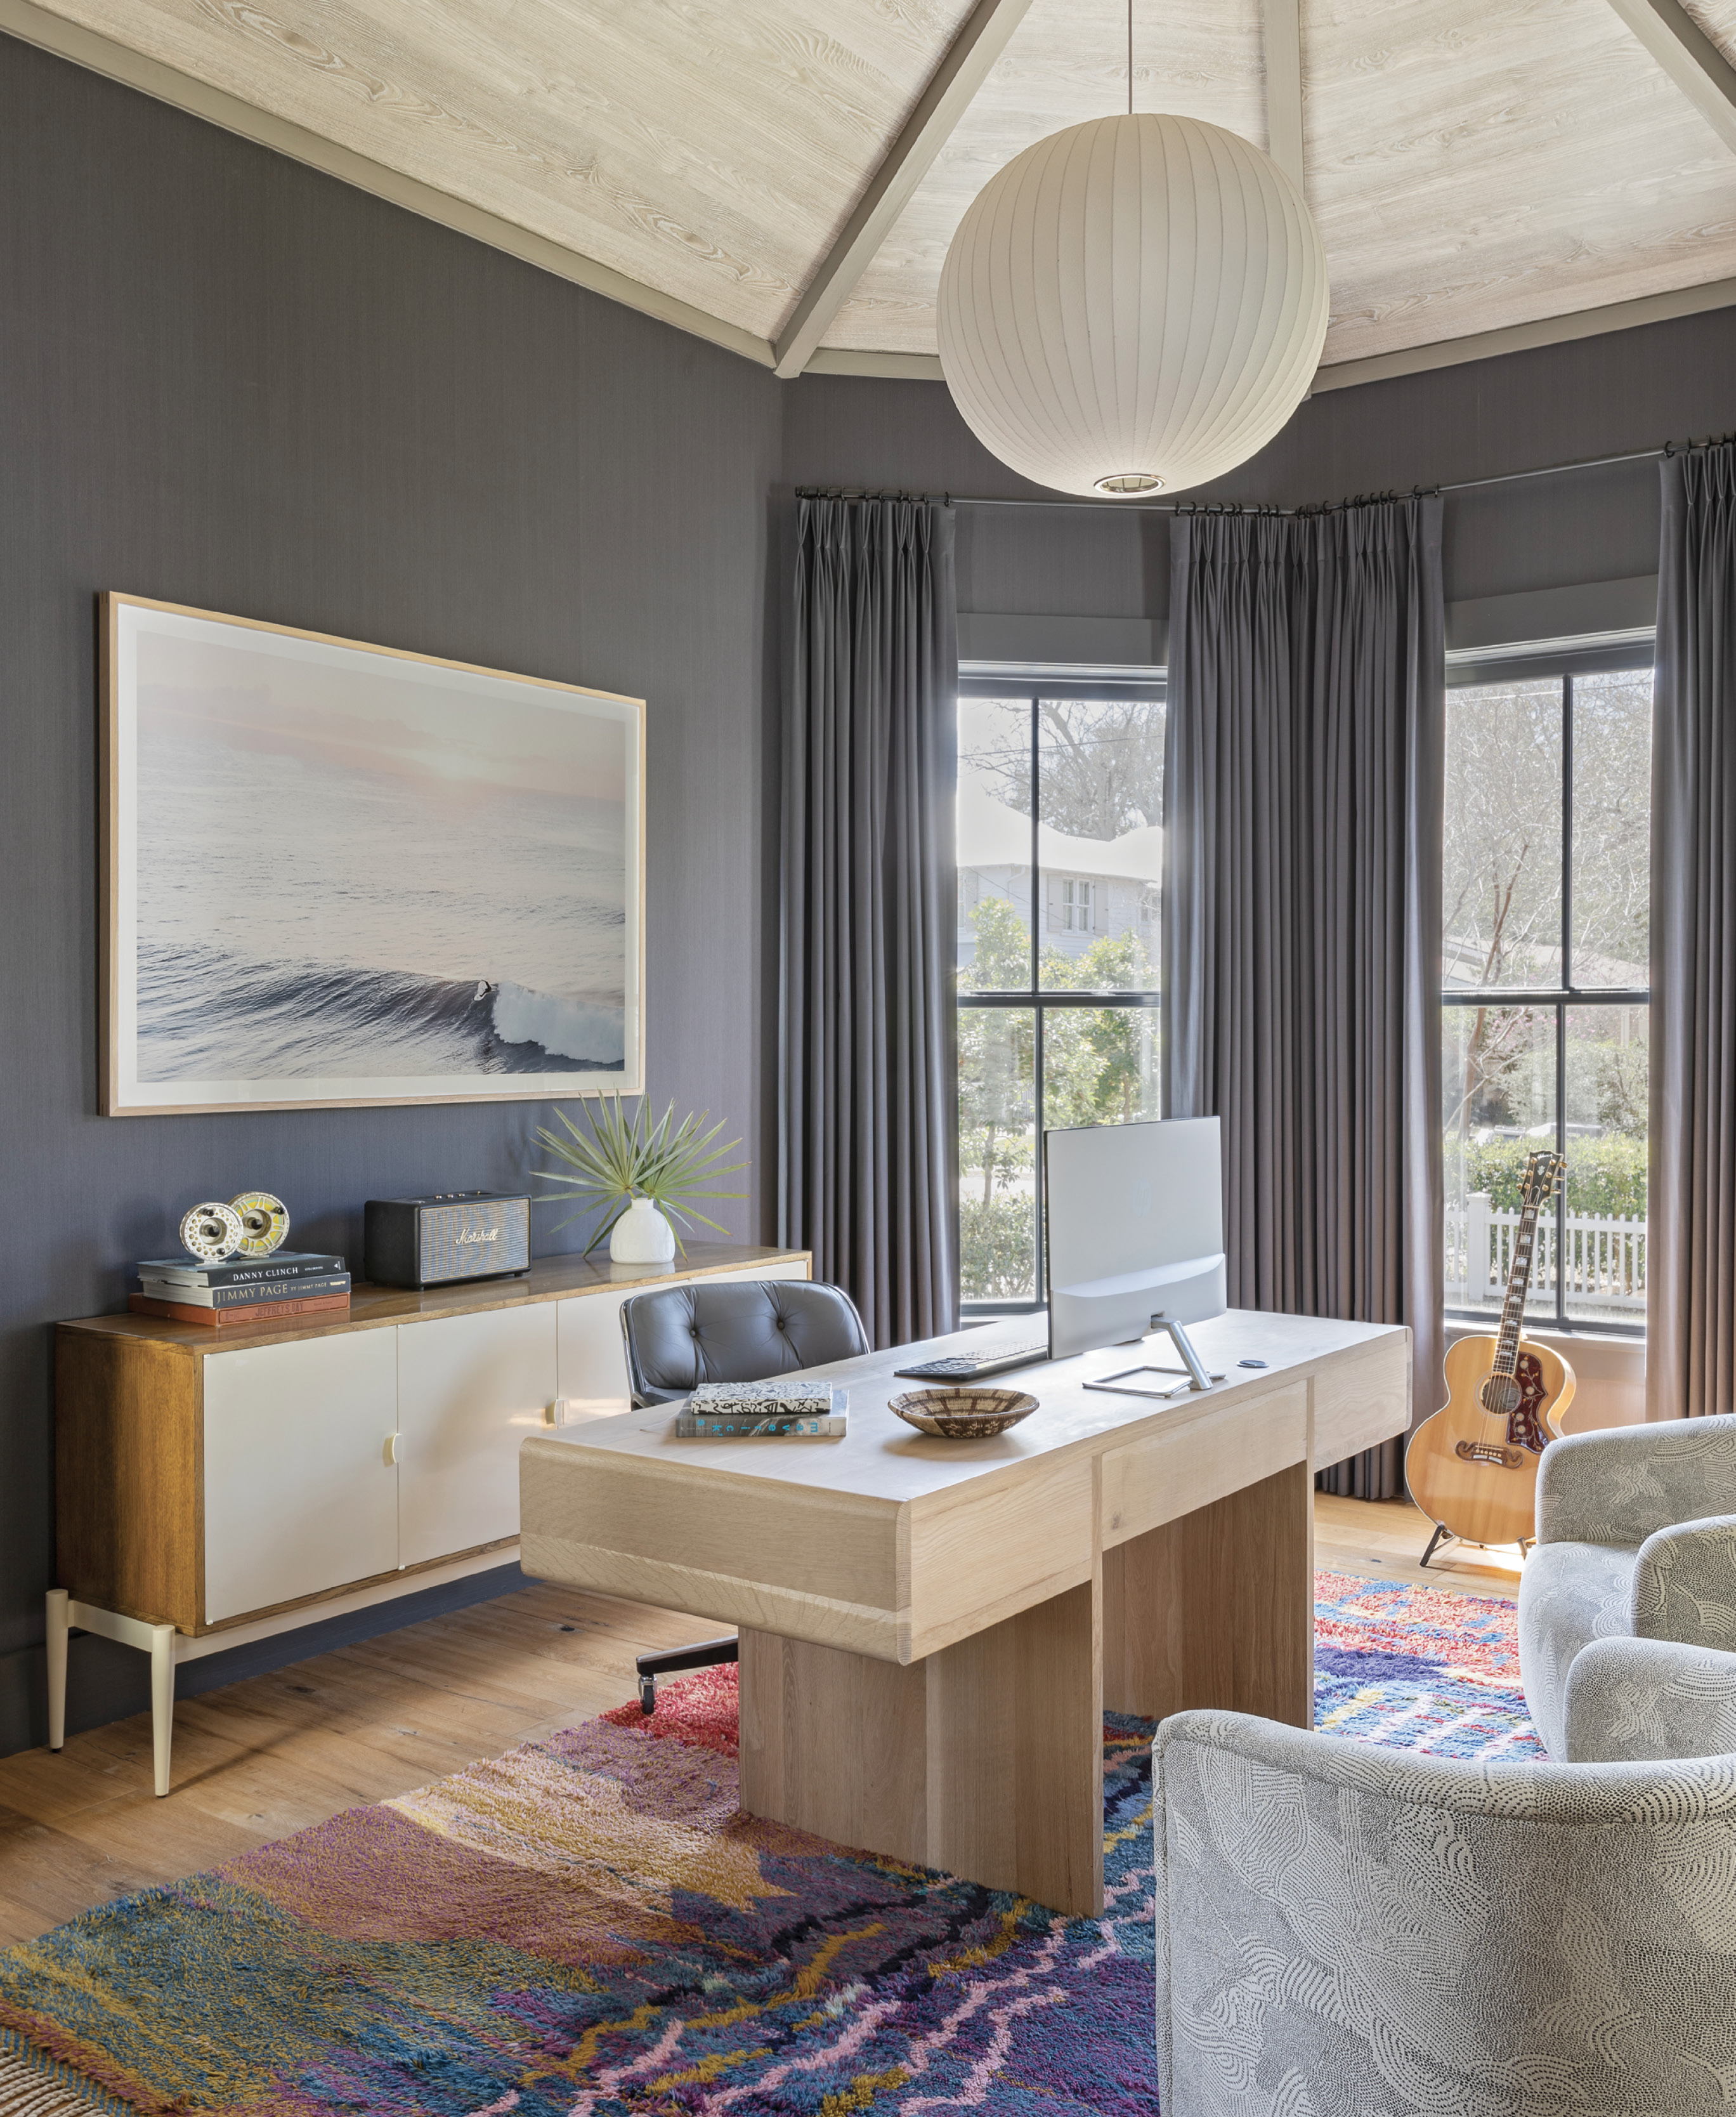 "ZOOM ROOM: The octagonal dining room saw little use pre-pandemic, so Jenny turned it into a handsome home office for her husband, Joe. Inky blue Phillip Jeffries grasscloth wallcoverings and drapes fashioned in Romo washable linen in ""Linara Blueberry"" set a dramatic yet soothing backdrop for the custom white oak desk by carpenter Ryan Mckiernan, vintage Baker Furniture sideboard, and Kate Holstein photograph of Maui's Honolua Bay from Mount Pleasant's Heart of Gold Gallery."